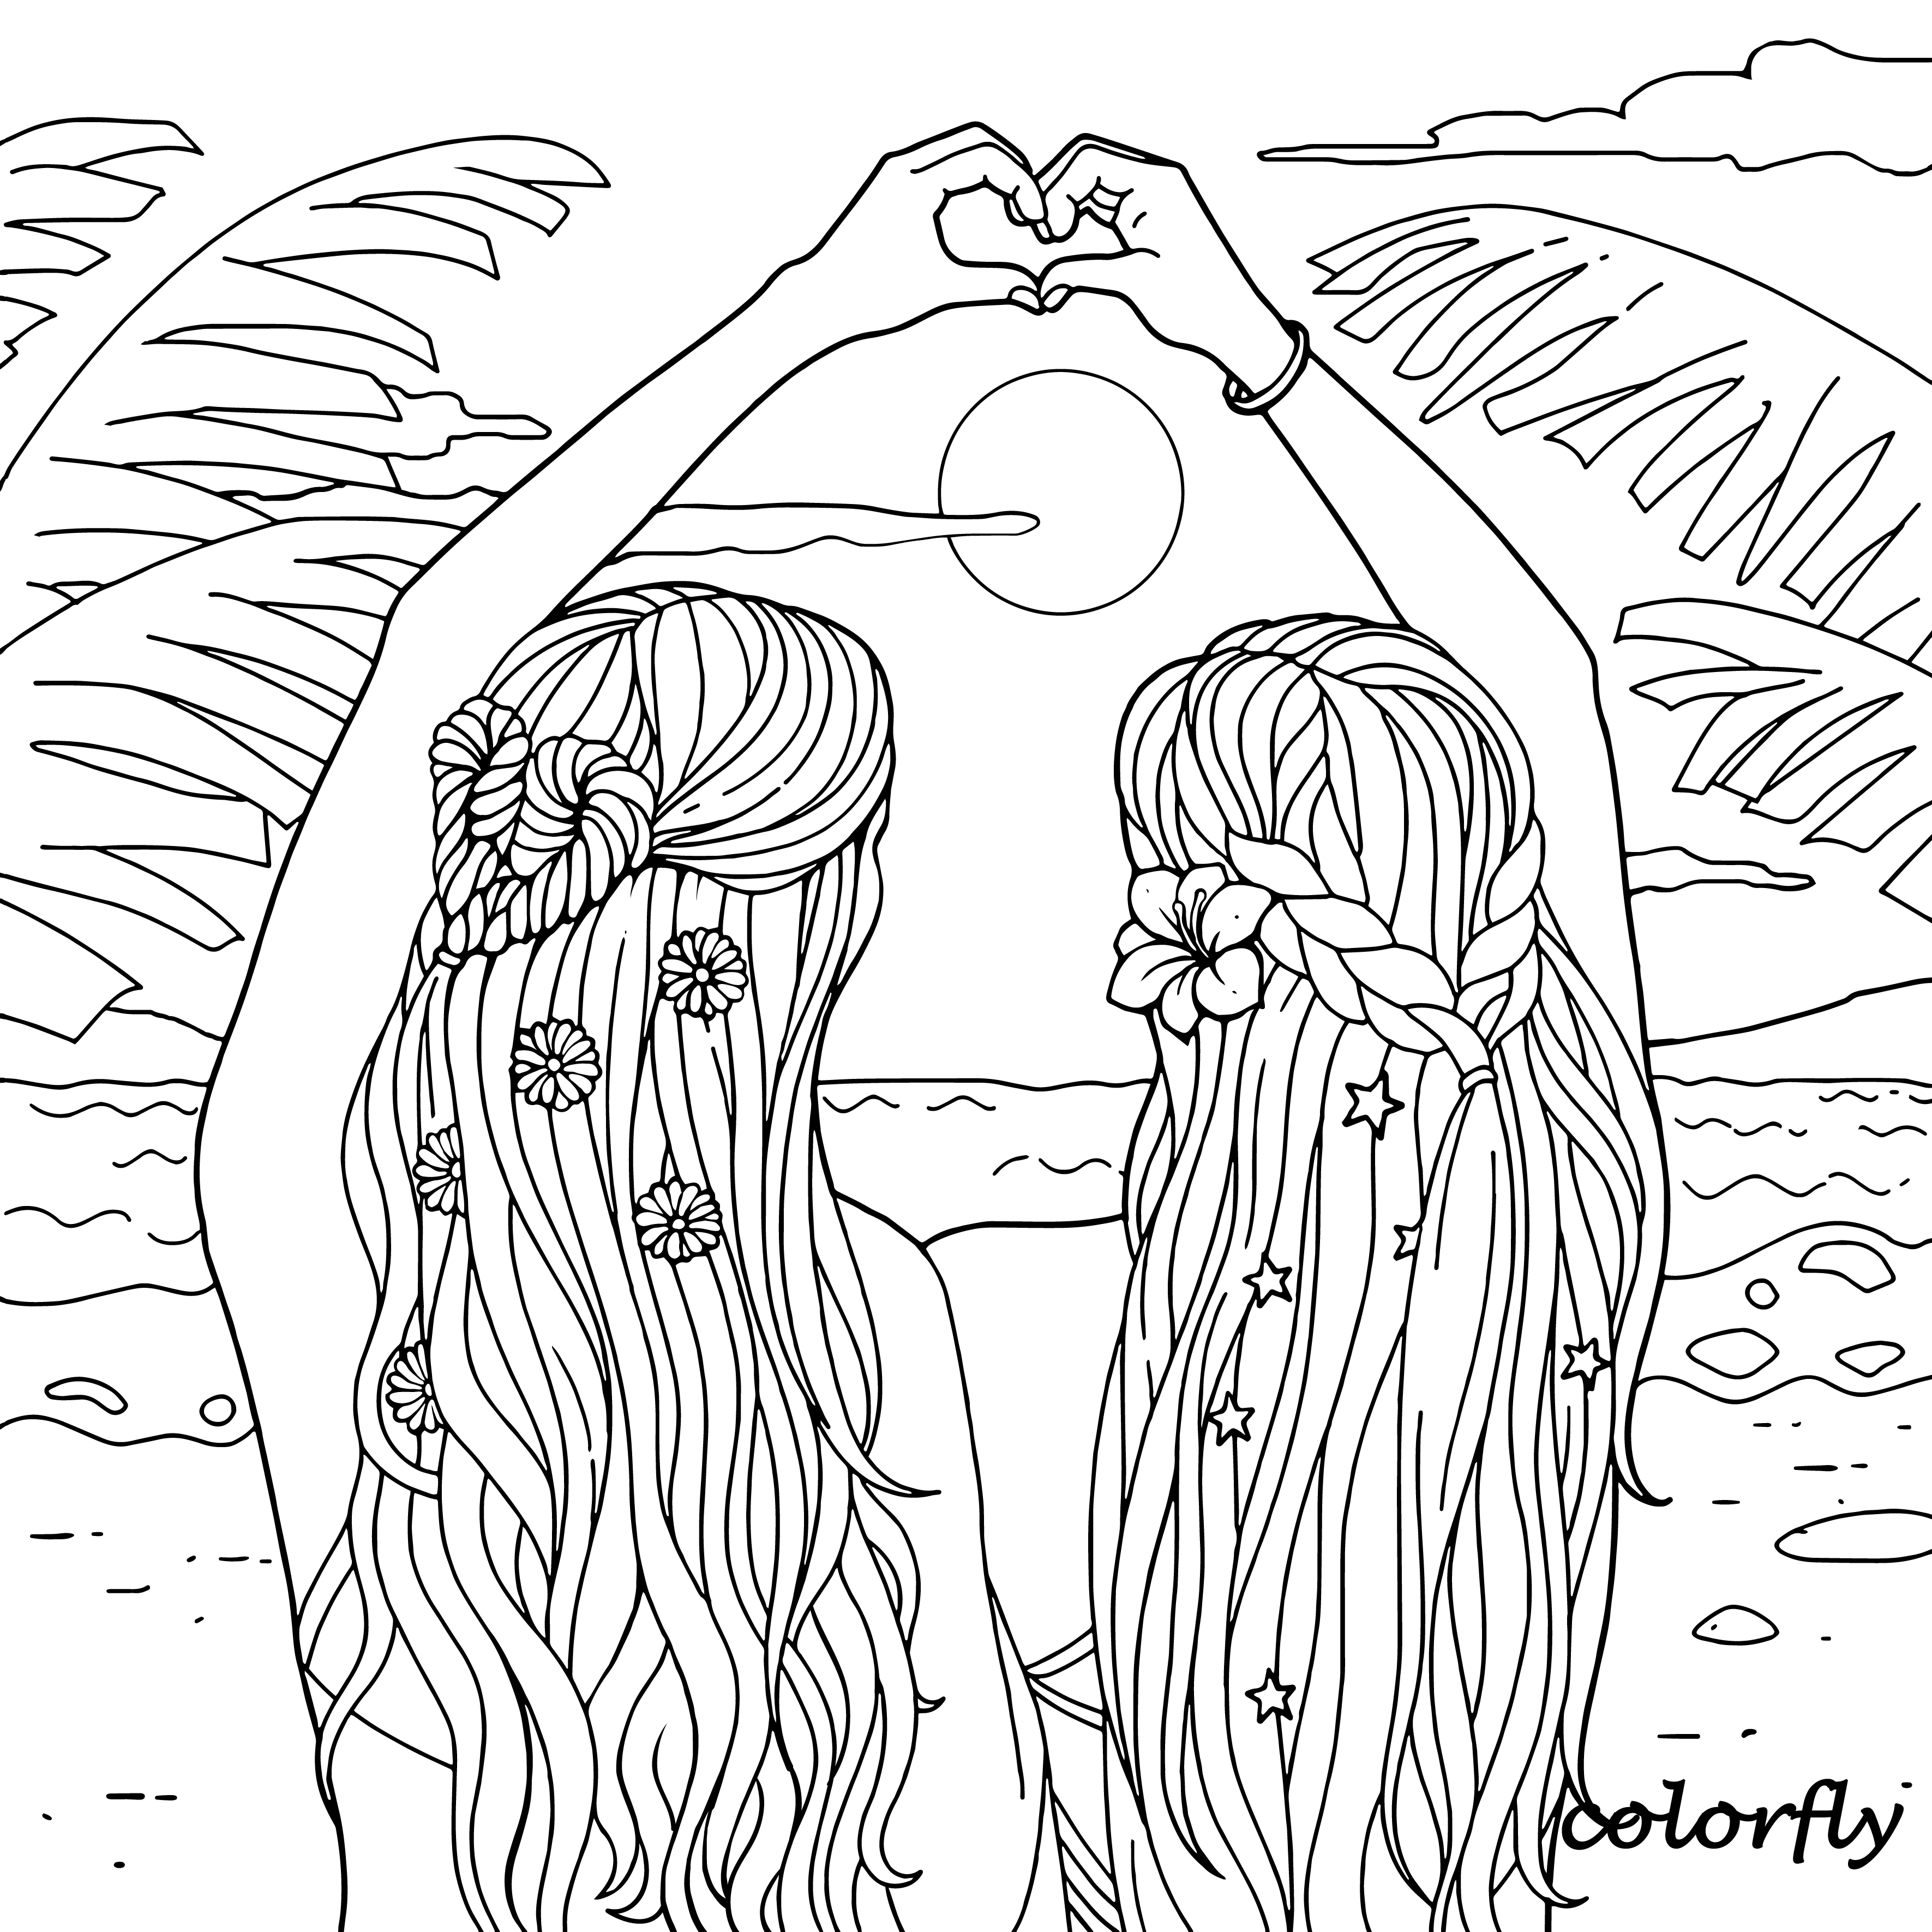 Colorfly Freebie Enjoy The Summer Beach Time With Us You Now Can Download And Print Th Fairy Coloring Pages Cute Coloring Pages Summer Coloring Pages